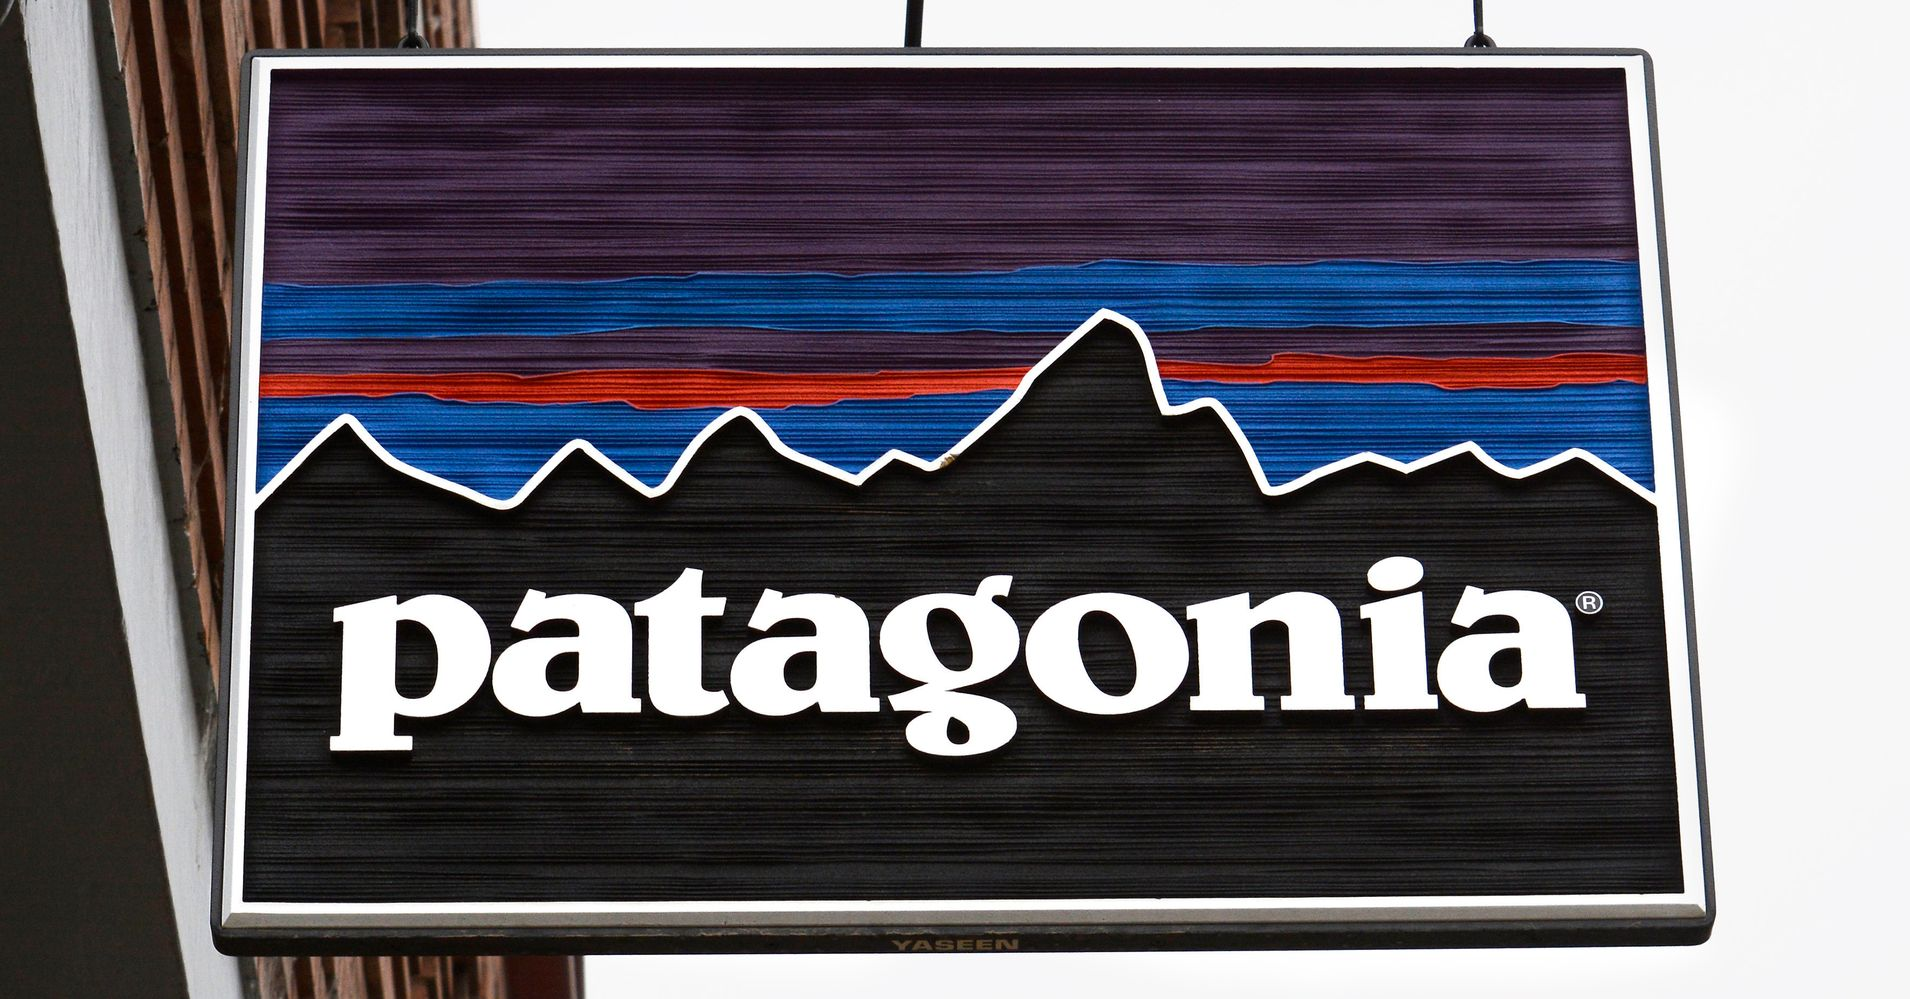 Patagonia's CEO Is Ready To Lead The Corporate Resistance To Donald Trump